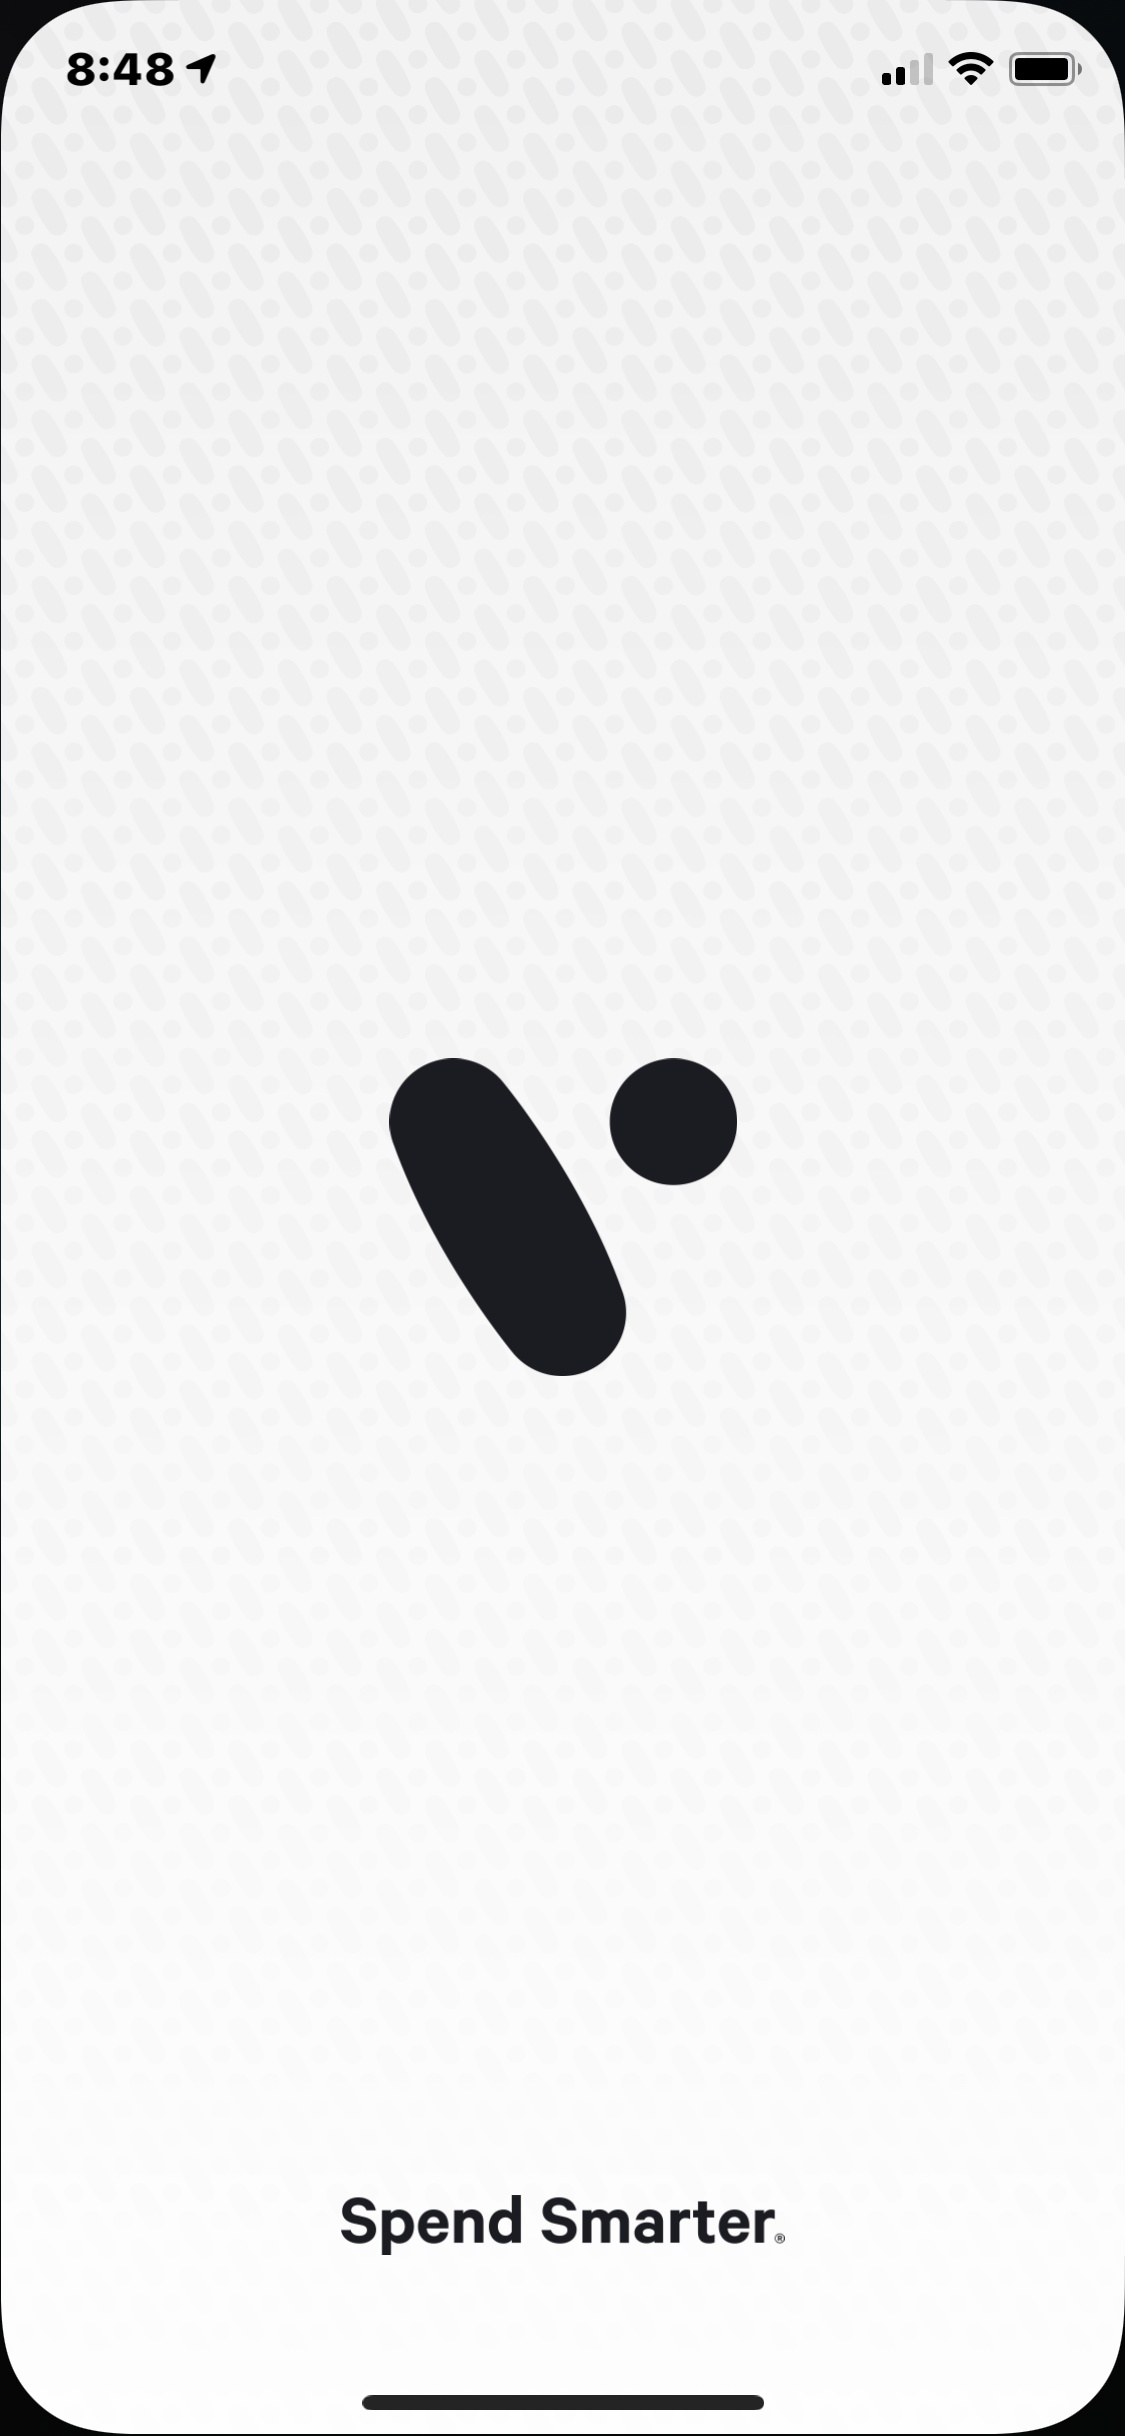 Launch Screen on iOS by Divvy from UIGarage